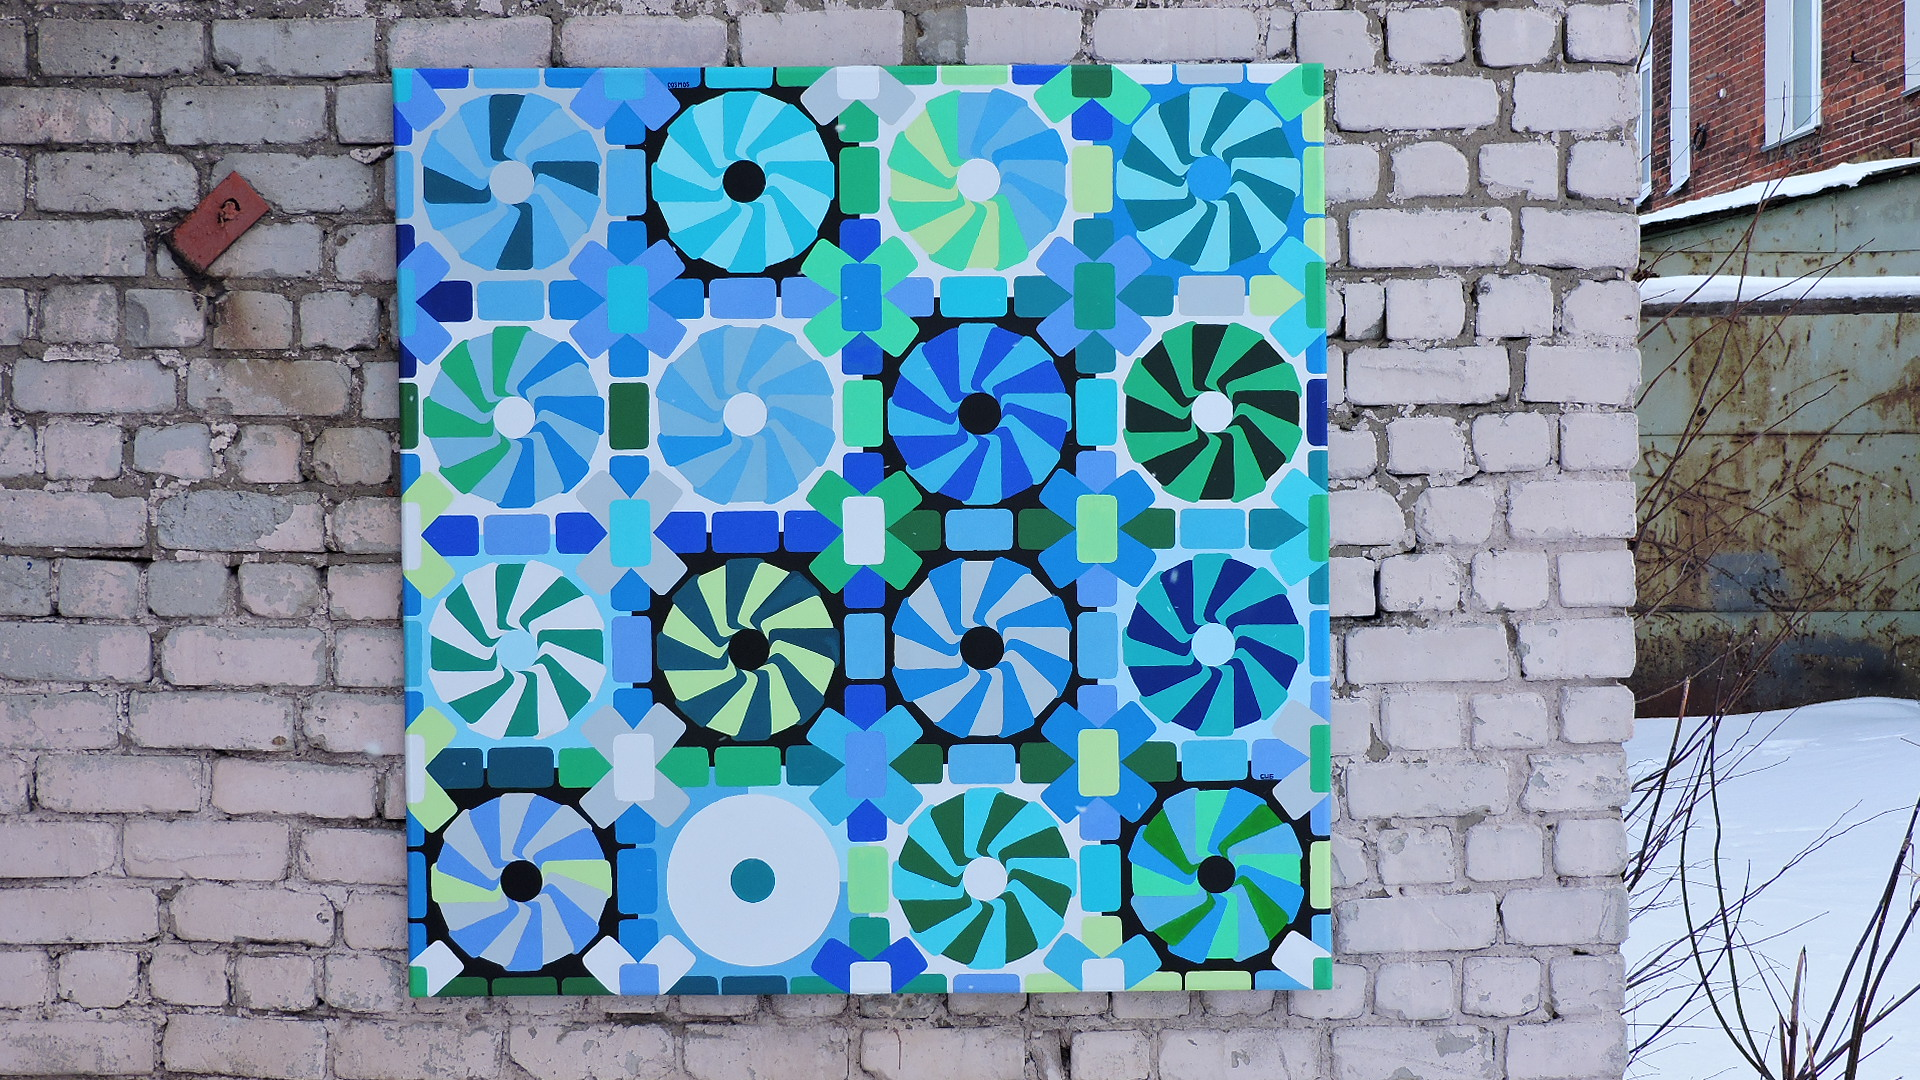 Interior painting, geometric pattern made in shades of green and blue